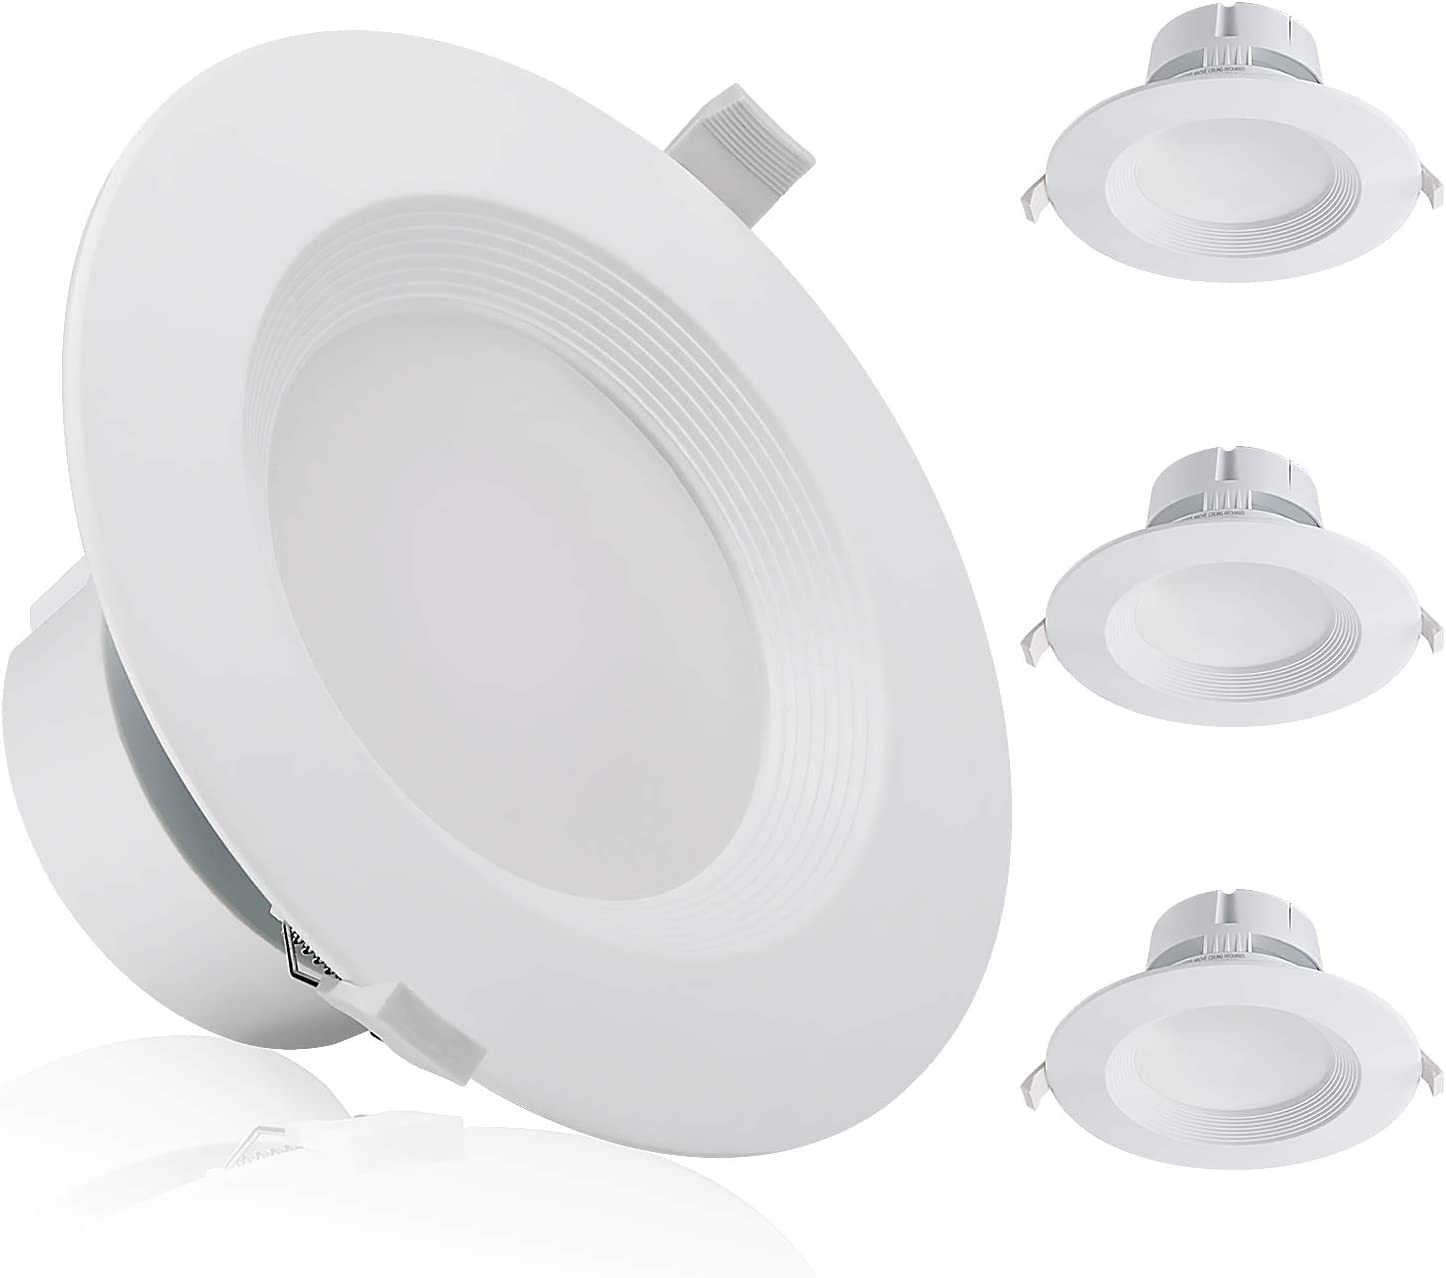 TORCHSTAR 9W 6 Inch LED Recessed Ceiling Light with Junction Box, (80W Eqv.), Dimmable Downlight Fixture, Airtight & IC Rated, UL Listed, Wet Location, 5000K Daylight, 5-Year Warranty, Pack of 4